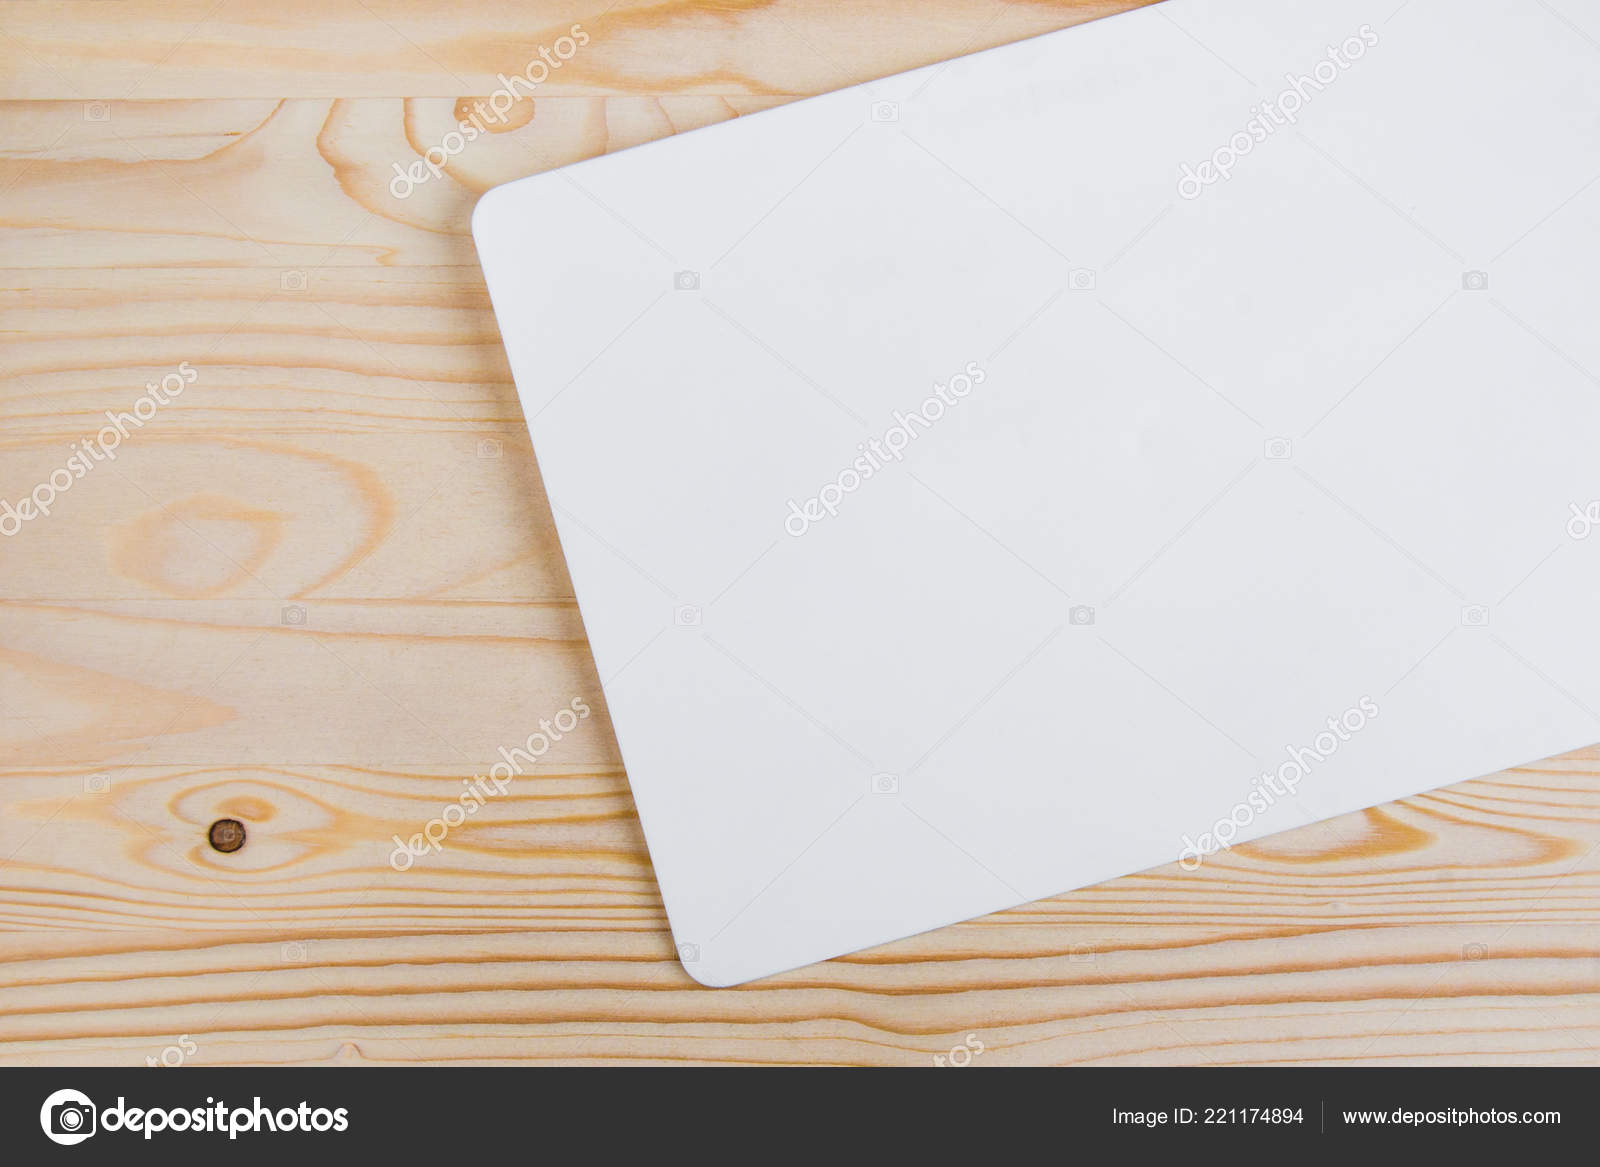 Clean White Sheet Rounded Edges Light Colored Wooden